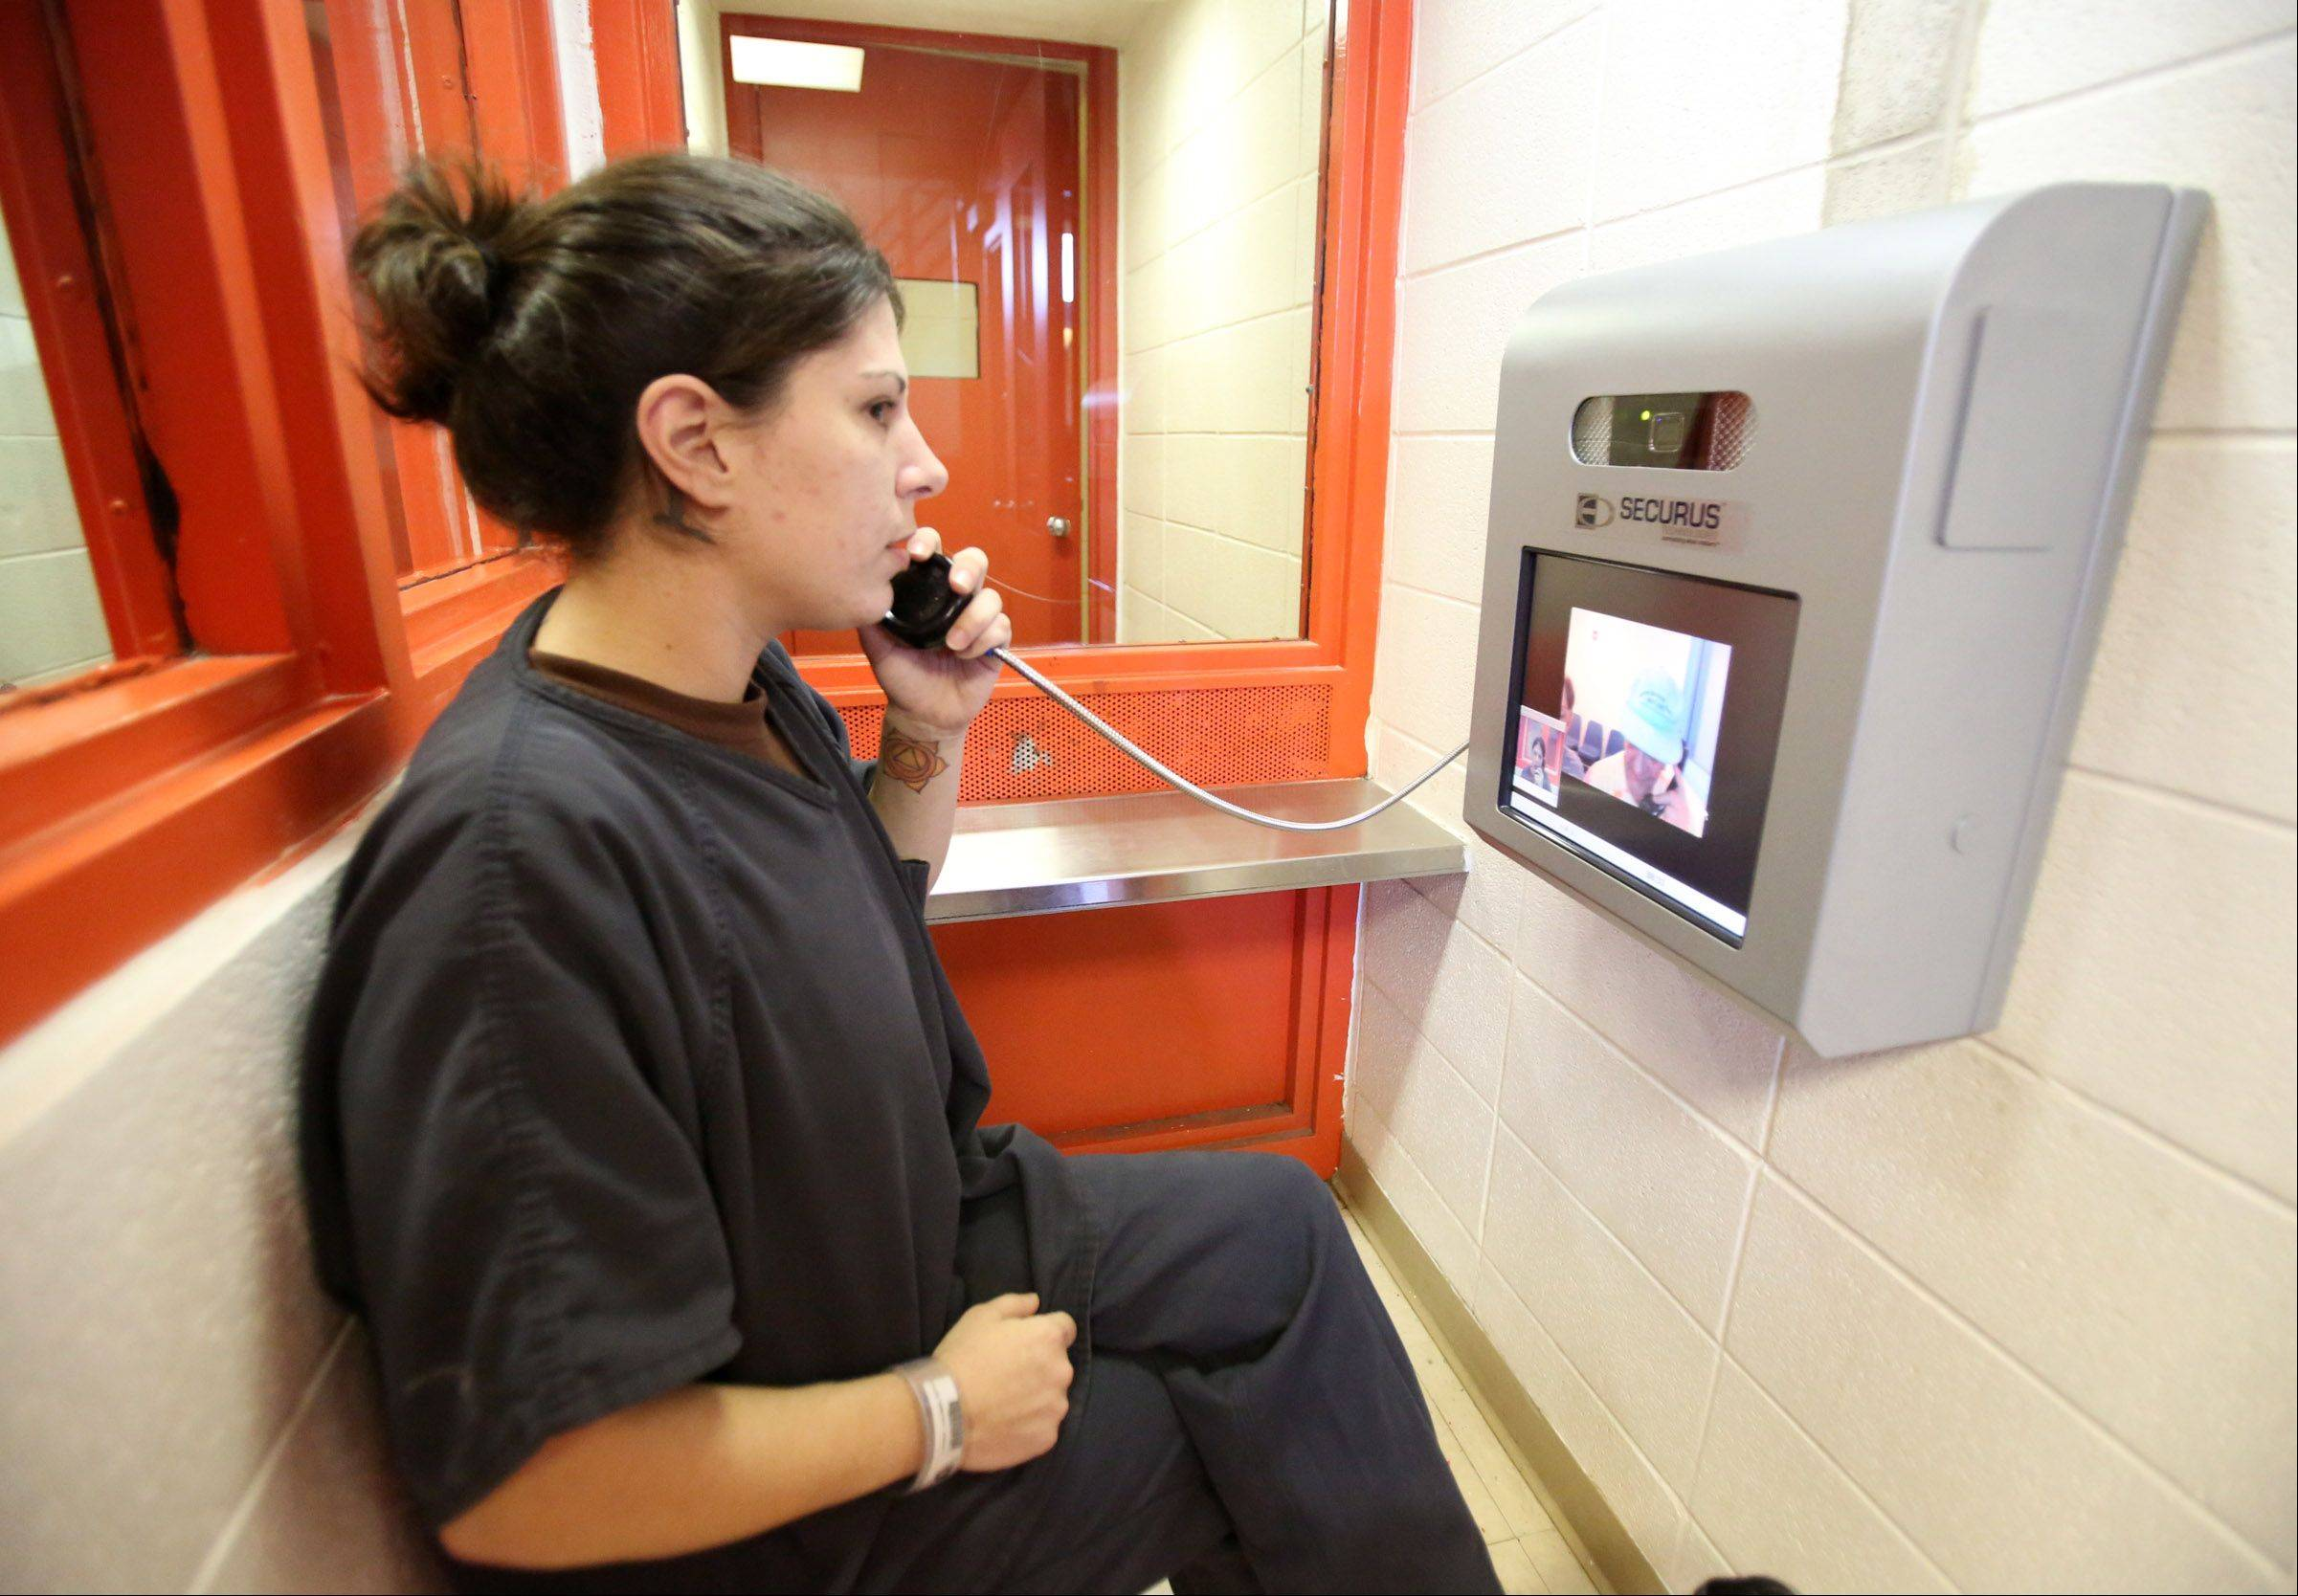 Beth Coleman, of Zion, an inmate at Lake County jail in Waukegan uses Skype to speak with her parents Ann and Mark Van Sickle of Zion.